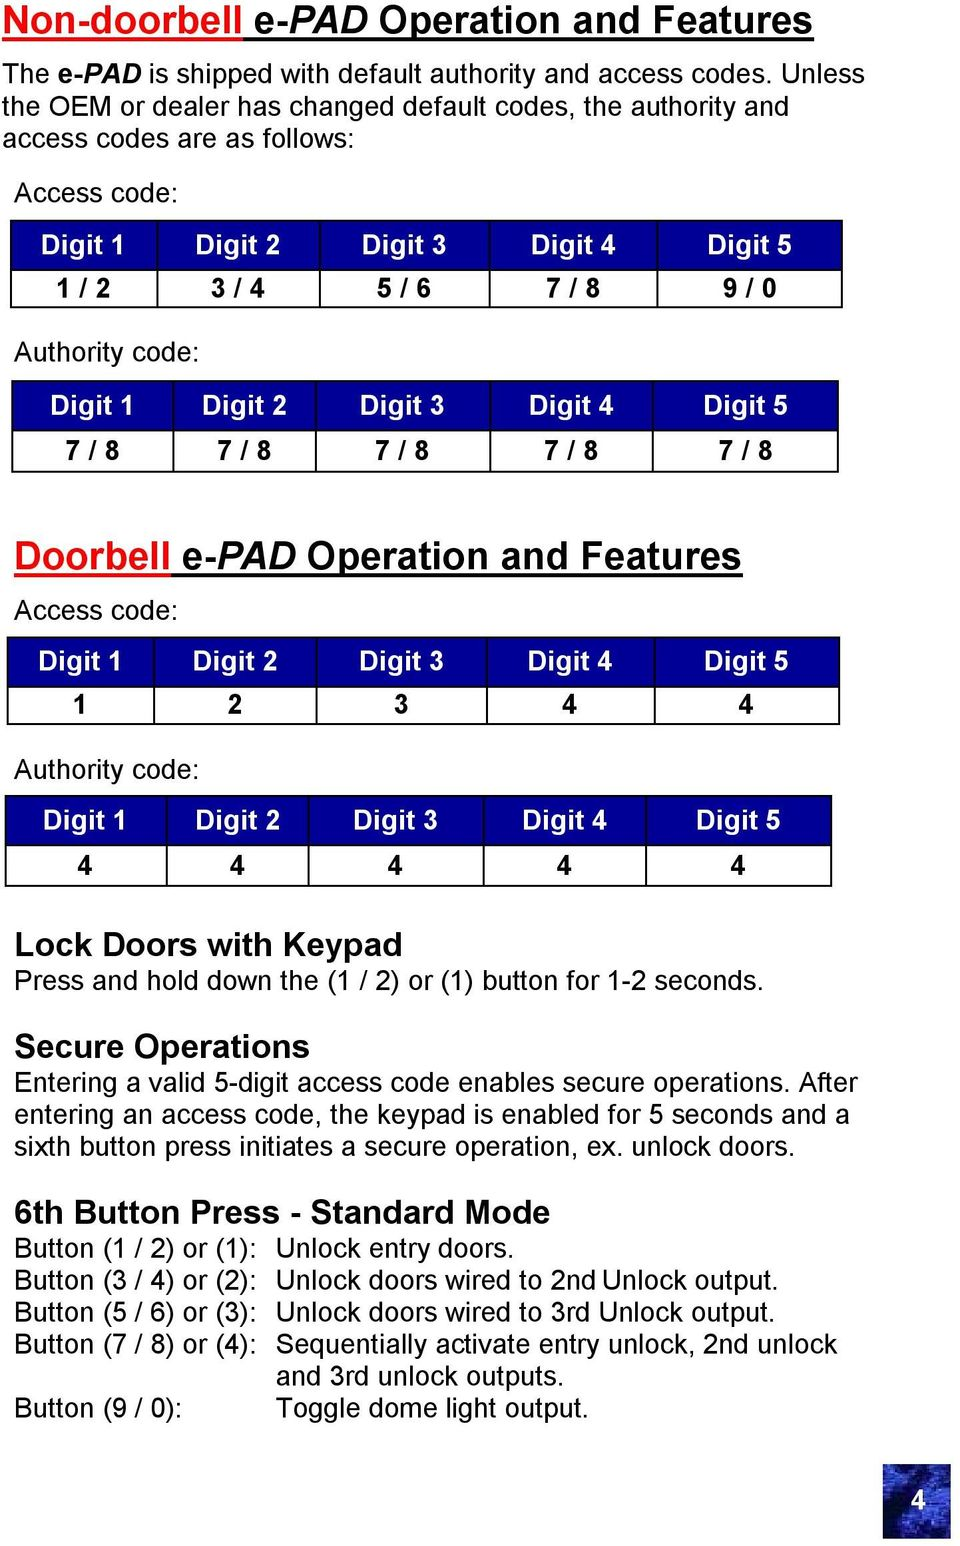 E Ask Electronic Access Security Keyless Entry Consumer Manual Fcc Trimark Keypad Wiring Diagram Digit 1 2 3 4 5 7 8